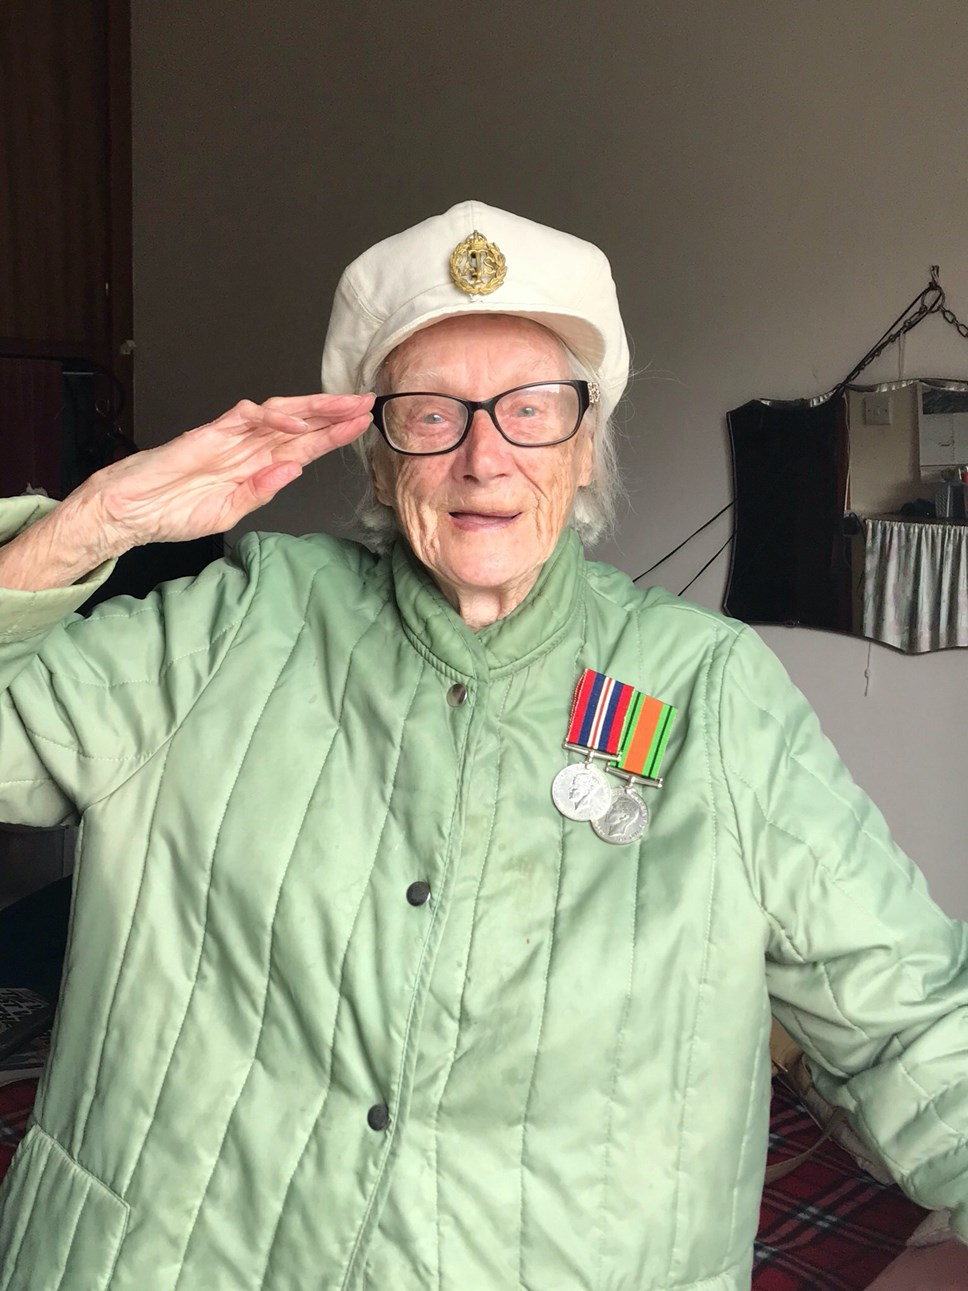 VE Day 75: Zoom calls with WW2 vets, tea parties at home and a silence to unite the nation: Mrs Edna Leon